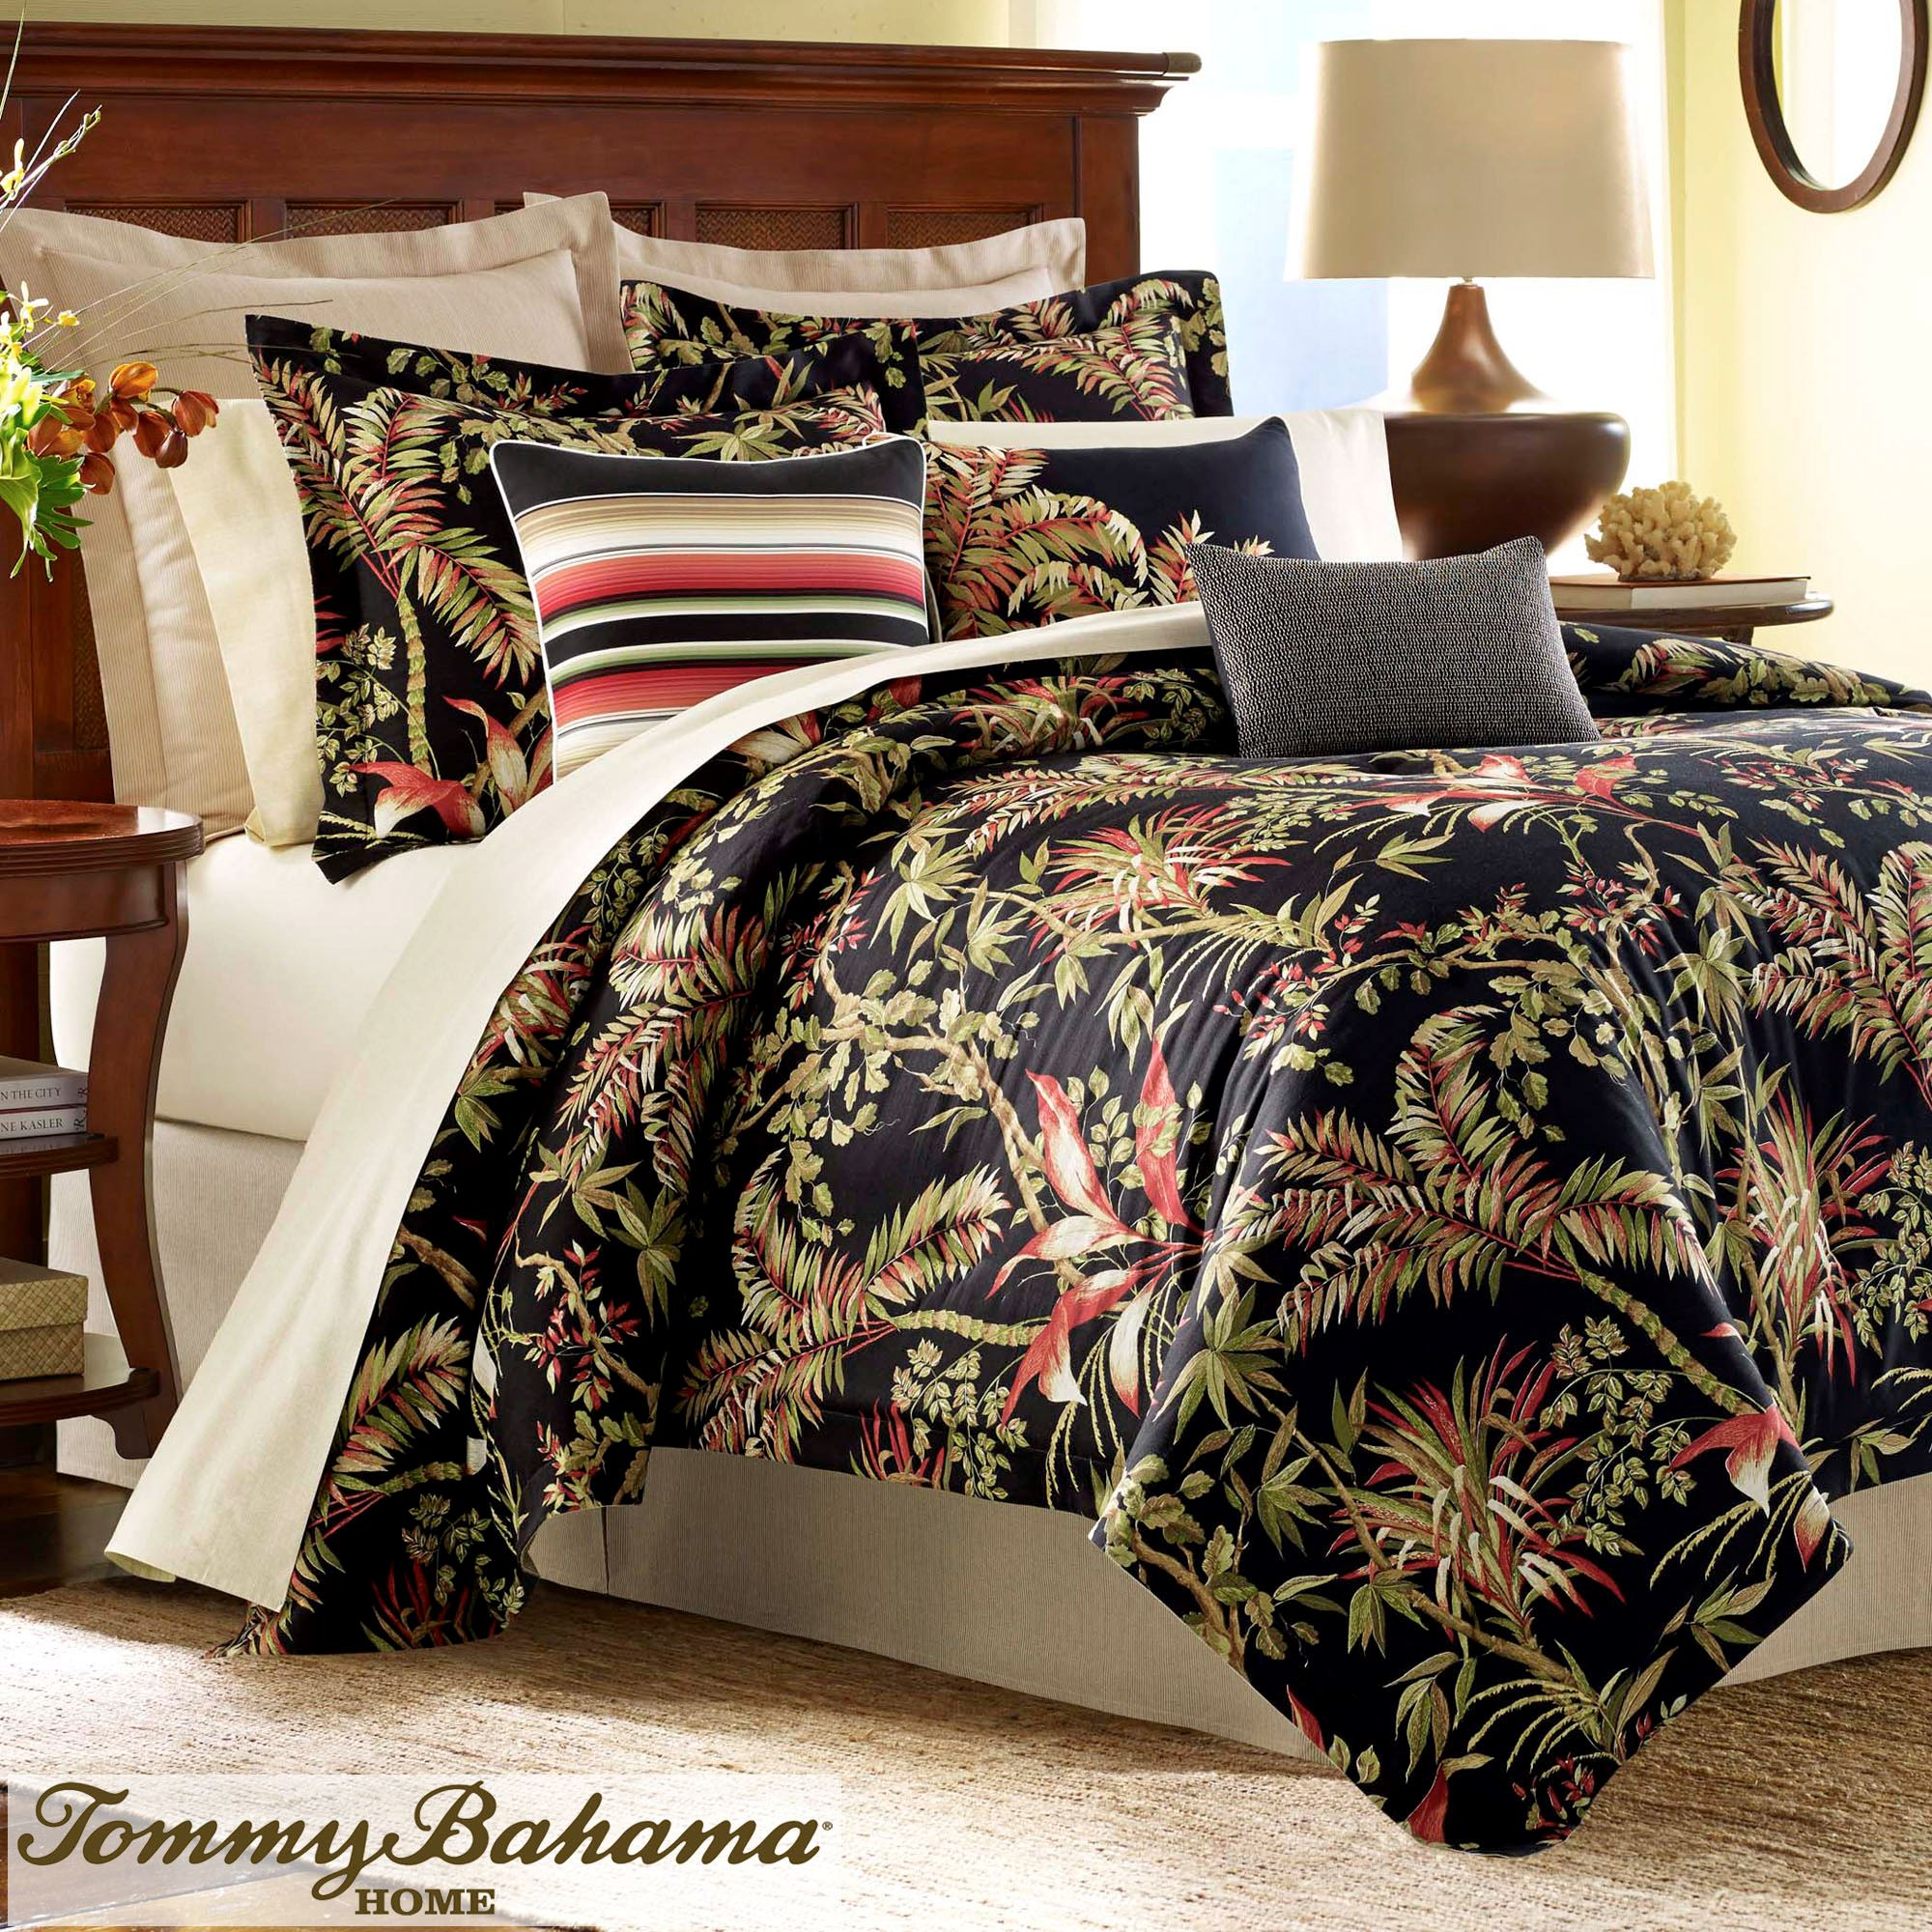 comforter also ideas corner wa set bed jcpenney cute californ queen piece sets walmart then design quilt bedroom decoration cal bedding flossy together california king suntzu alannah winsome